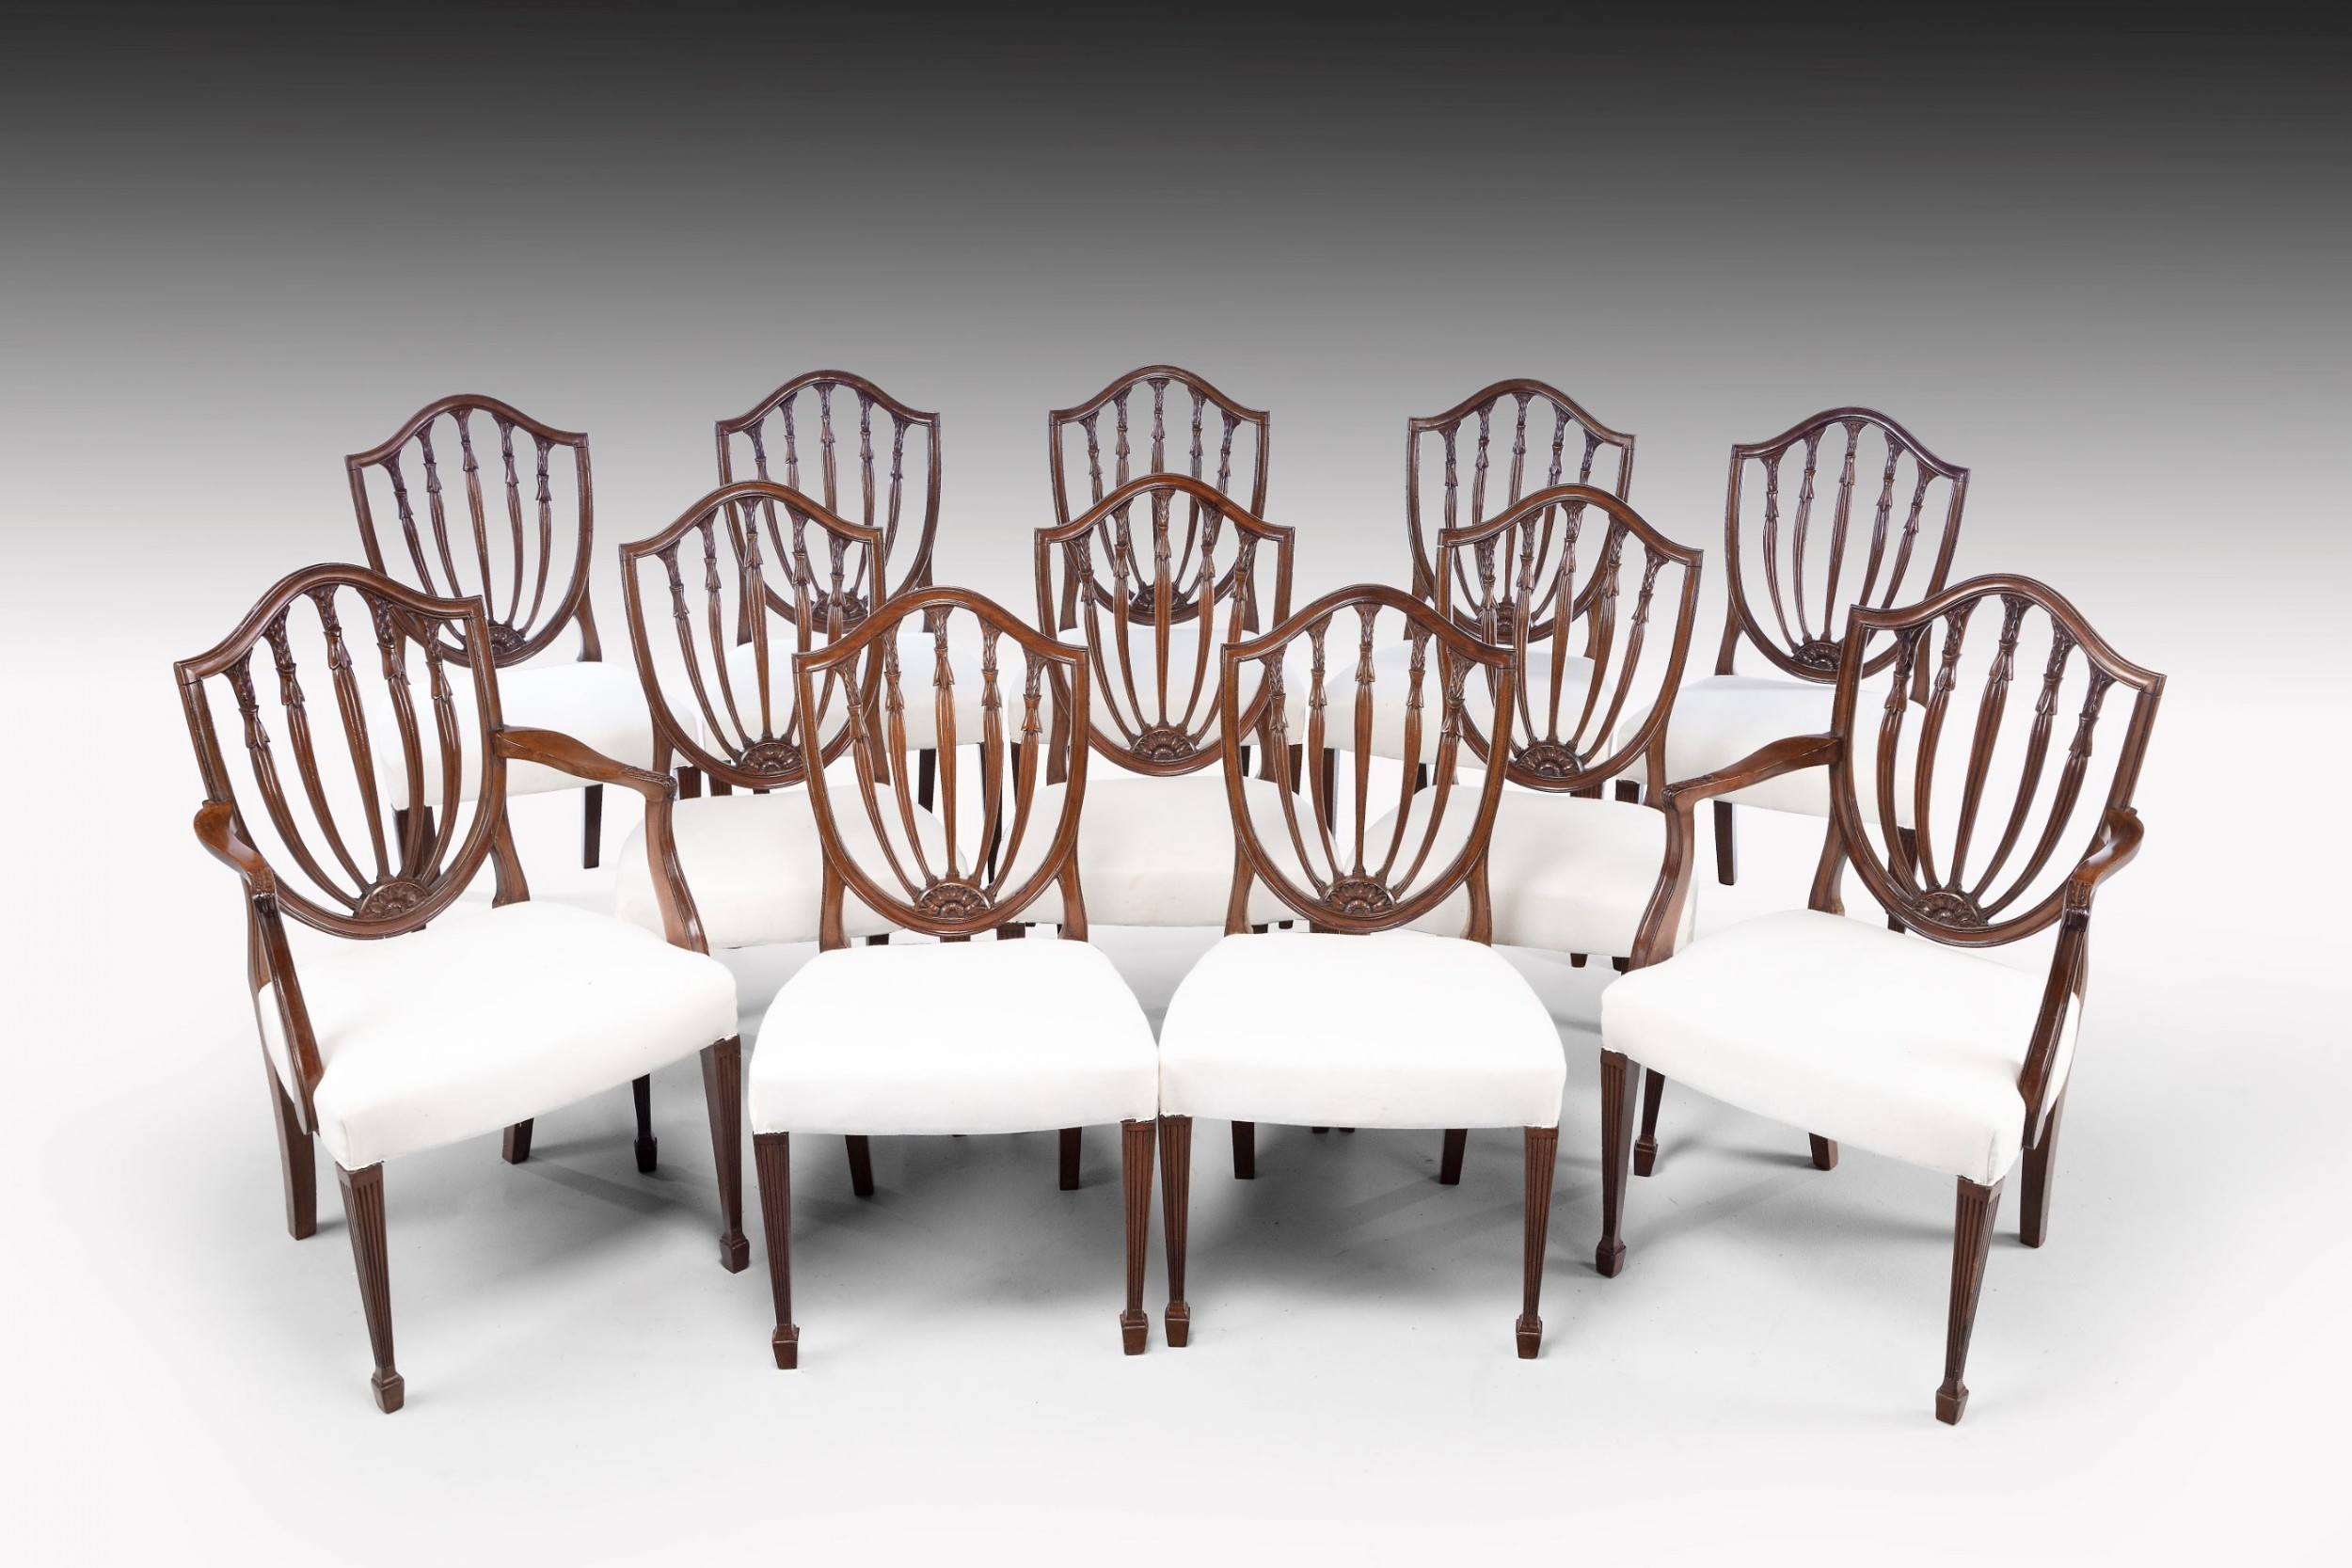 a fine early 20th century set of 12 102 classical hepplewhite style chairs